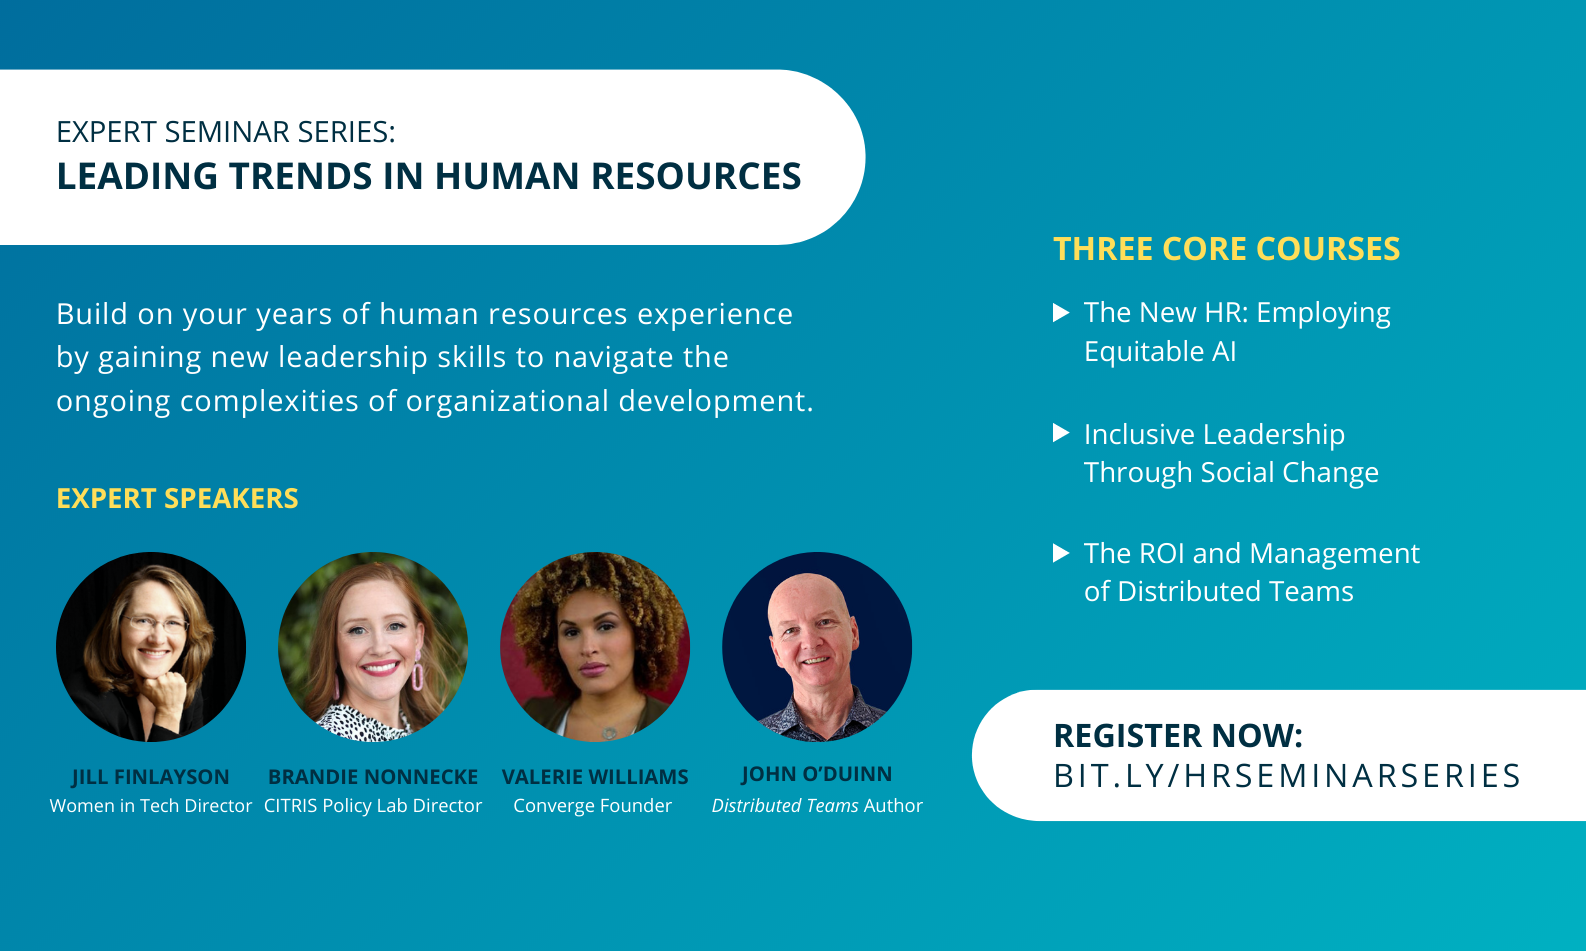 Expert Seminar Series: Leading Trends in Human Resources